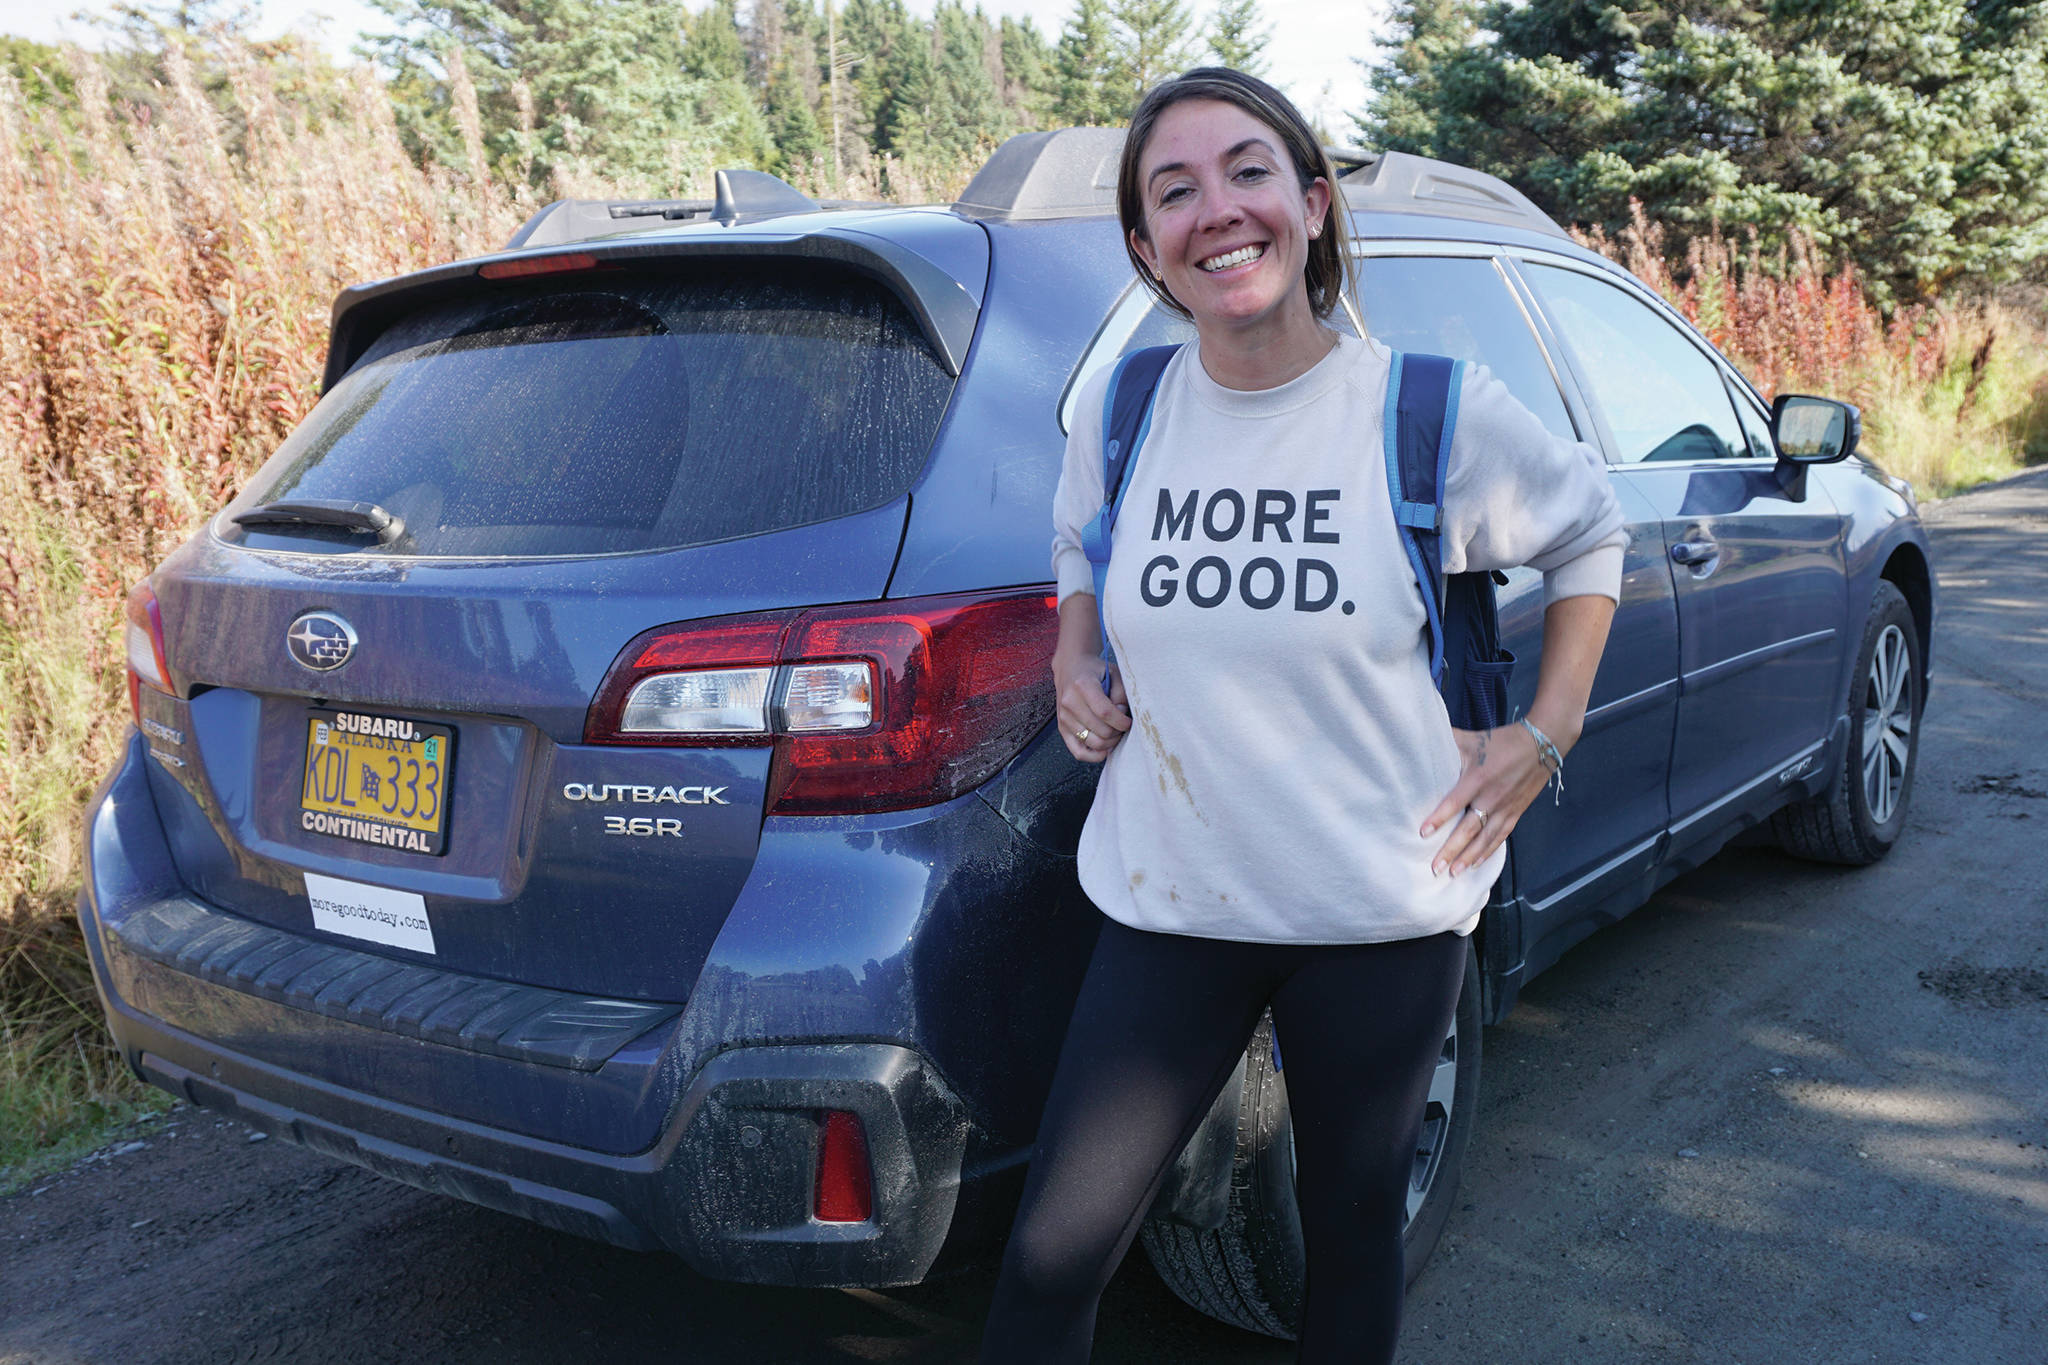 Mary Latham stands by her borrowed blue Subaru Outback on Sept. 16, 2019, in Homer, Alaska. Latham has been touring the United States collecting stories of human kindness to put in a book for people to read in hospital waiting rooms. Alaska is the 48th state Latham has visited since starting her trip in September 2016. (Photo by Michael Armstrong/Homer News)